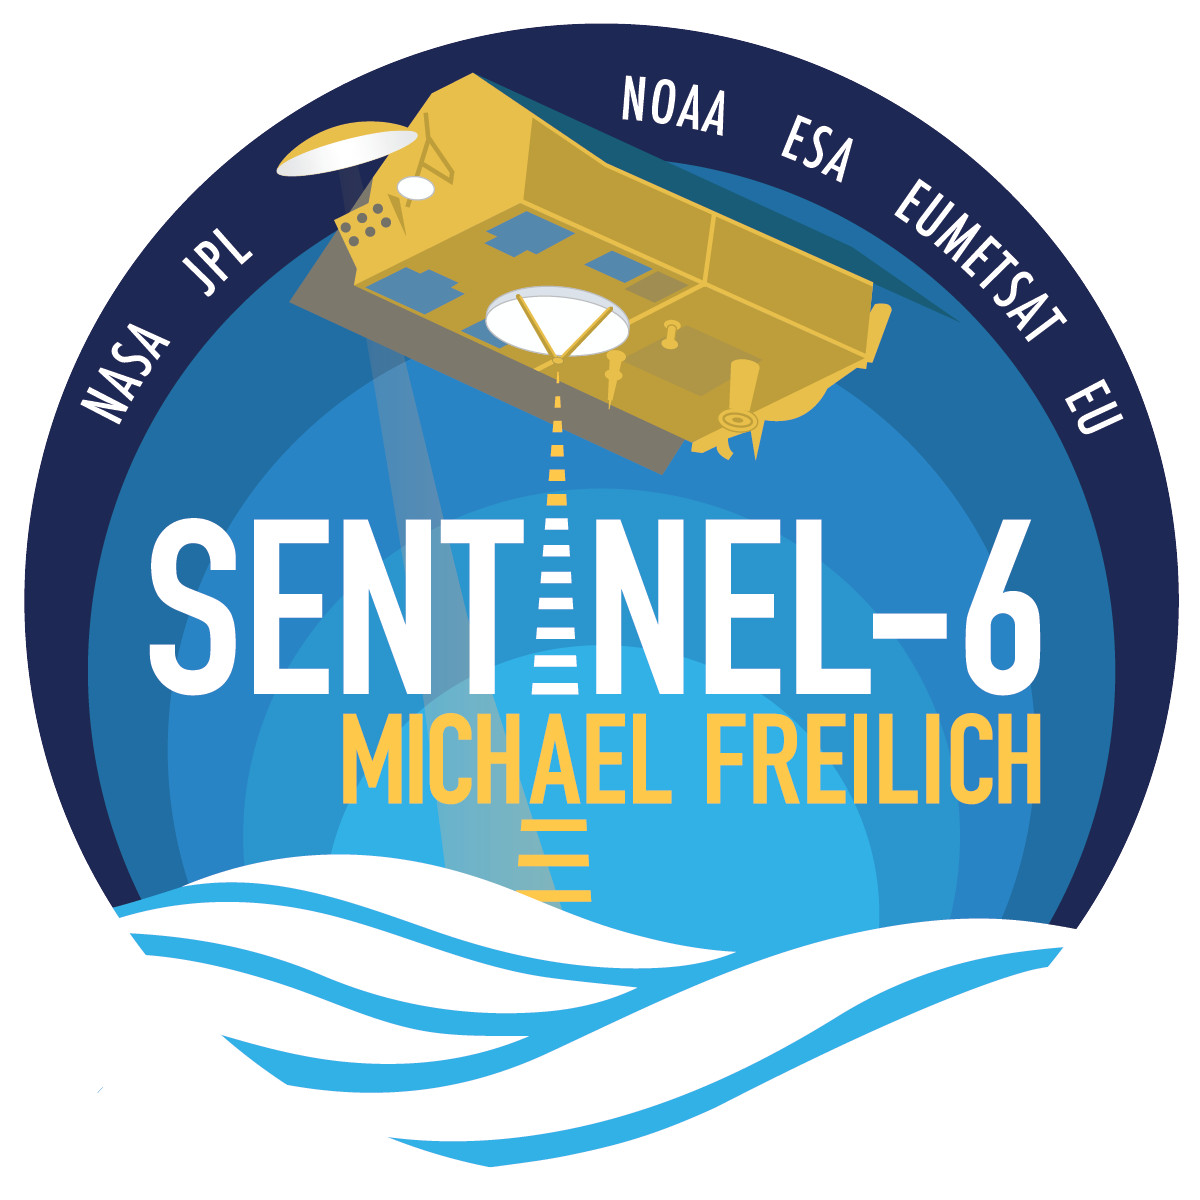 Sentinel-6 Michael Freilich spacecraft logo